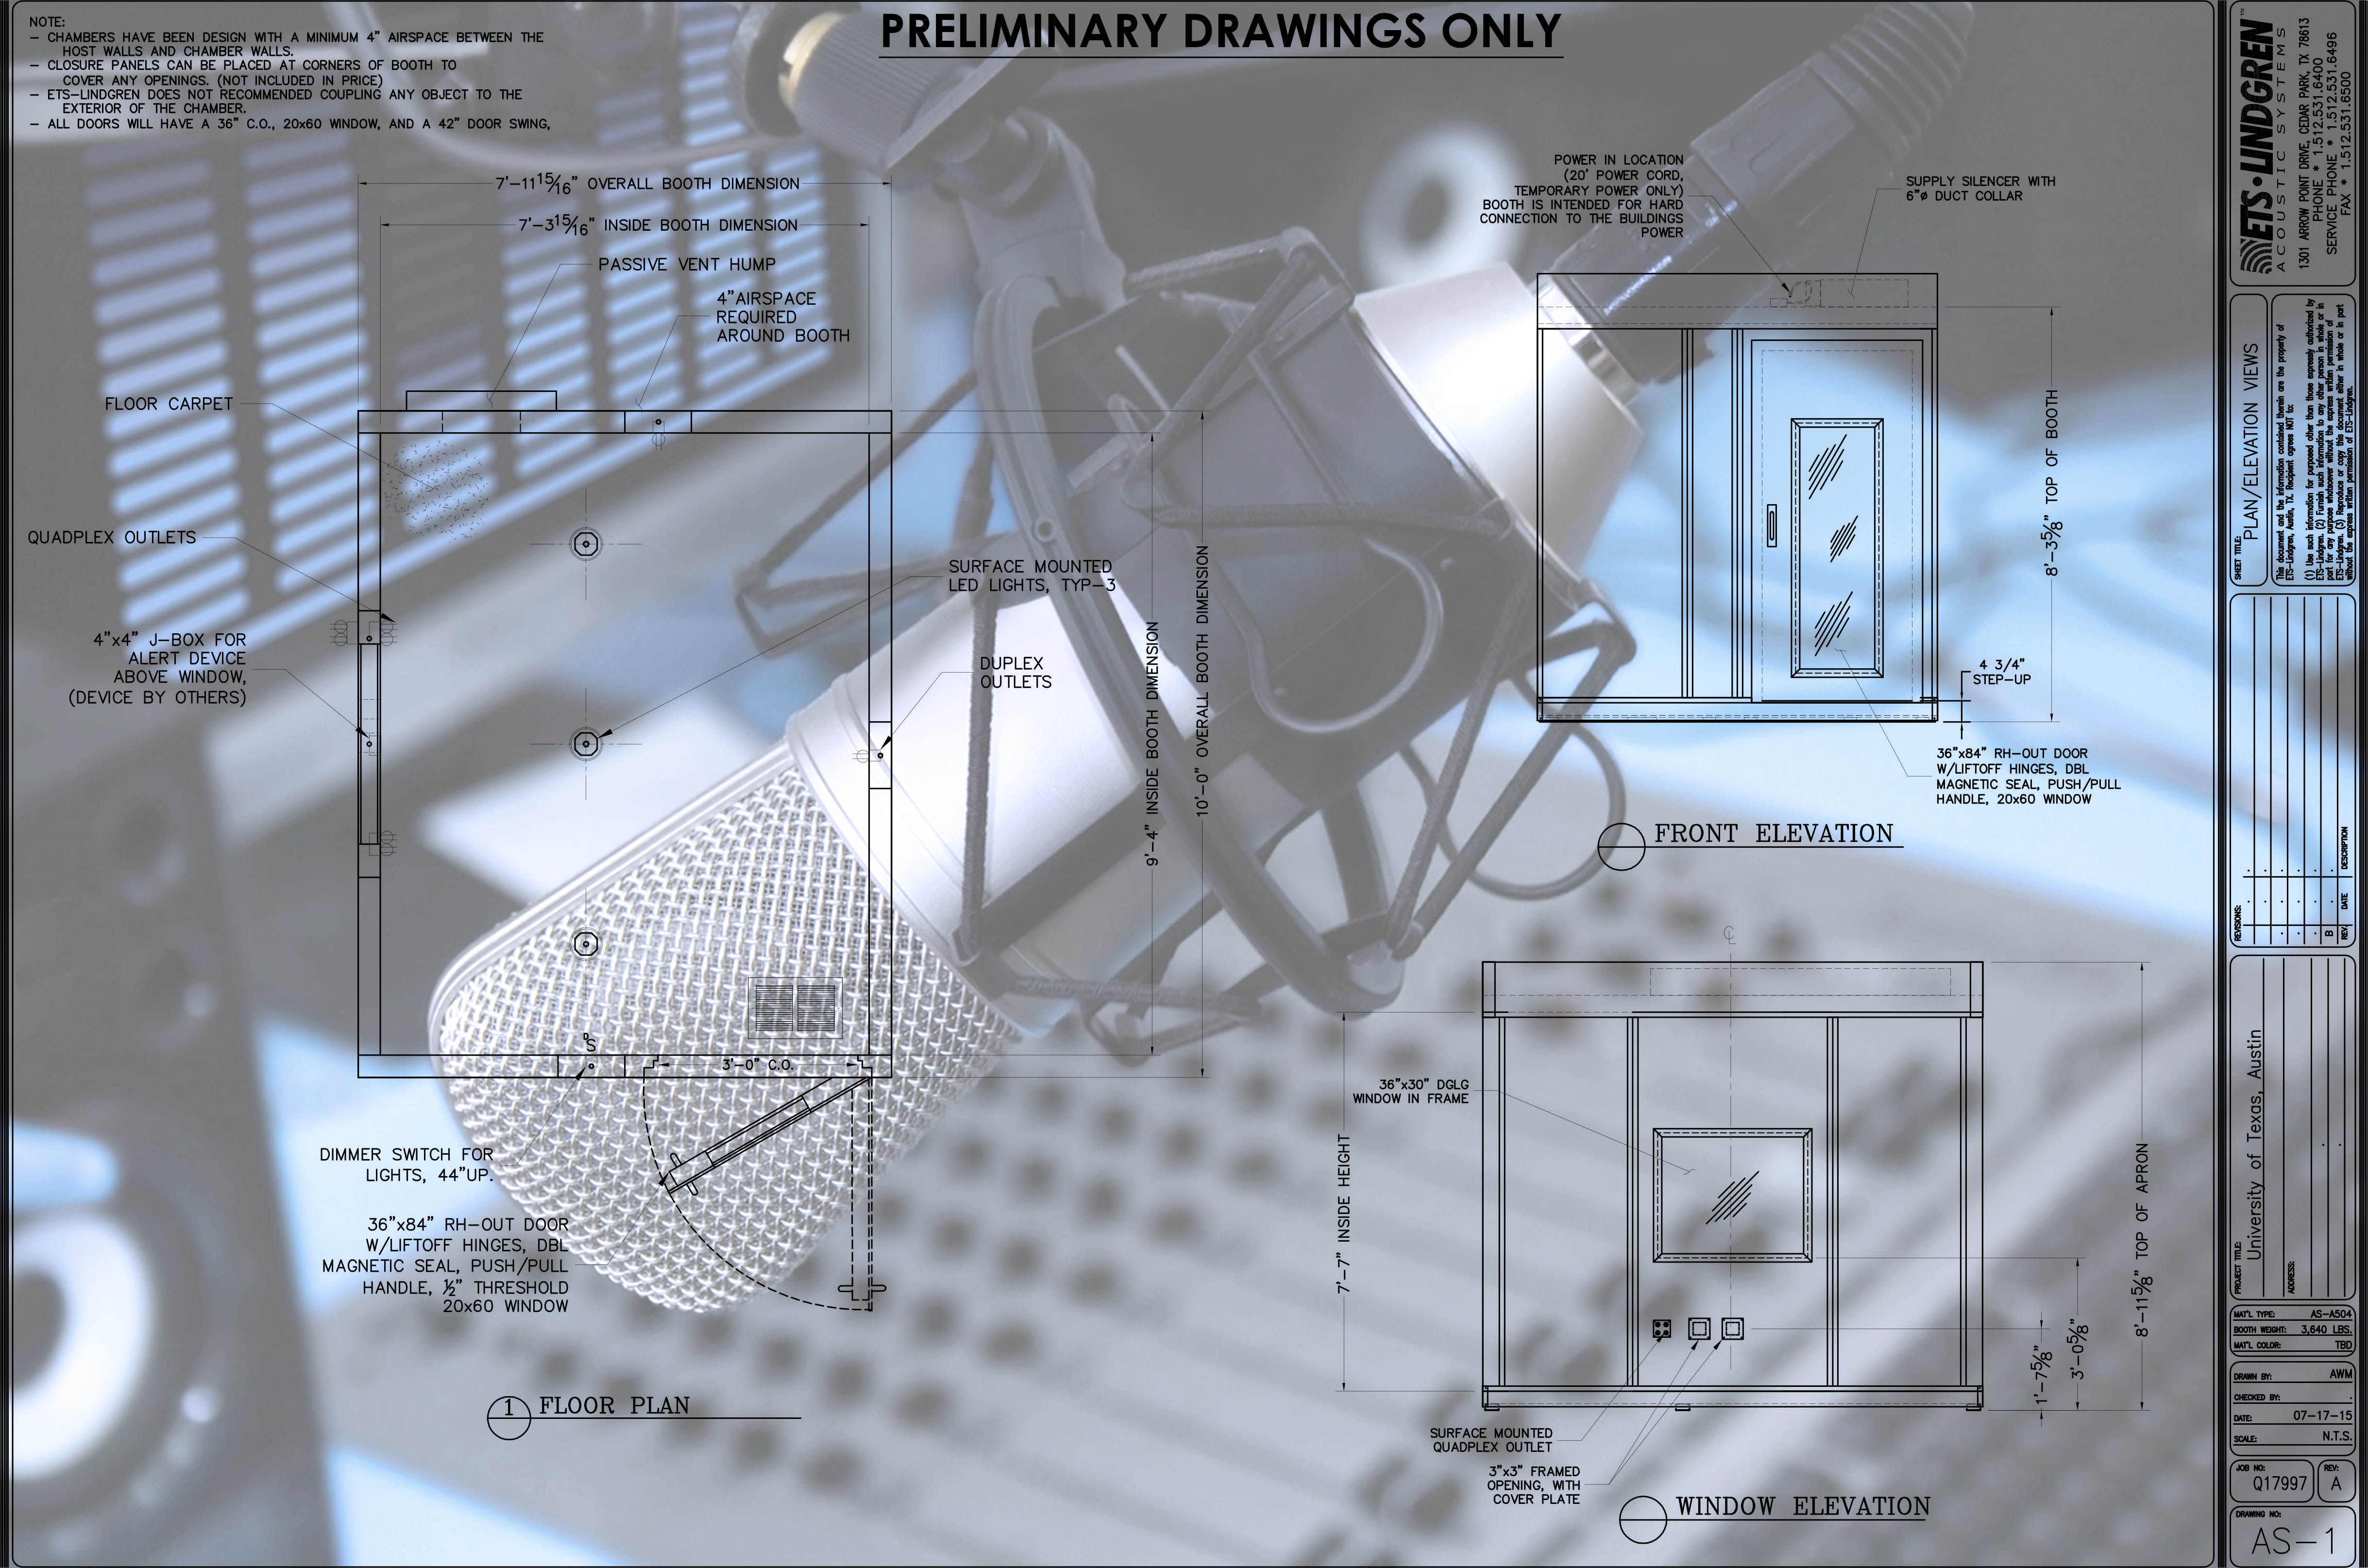 Preliminary drawings for the recording soundbooth.